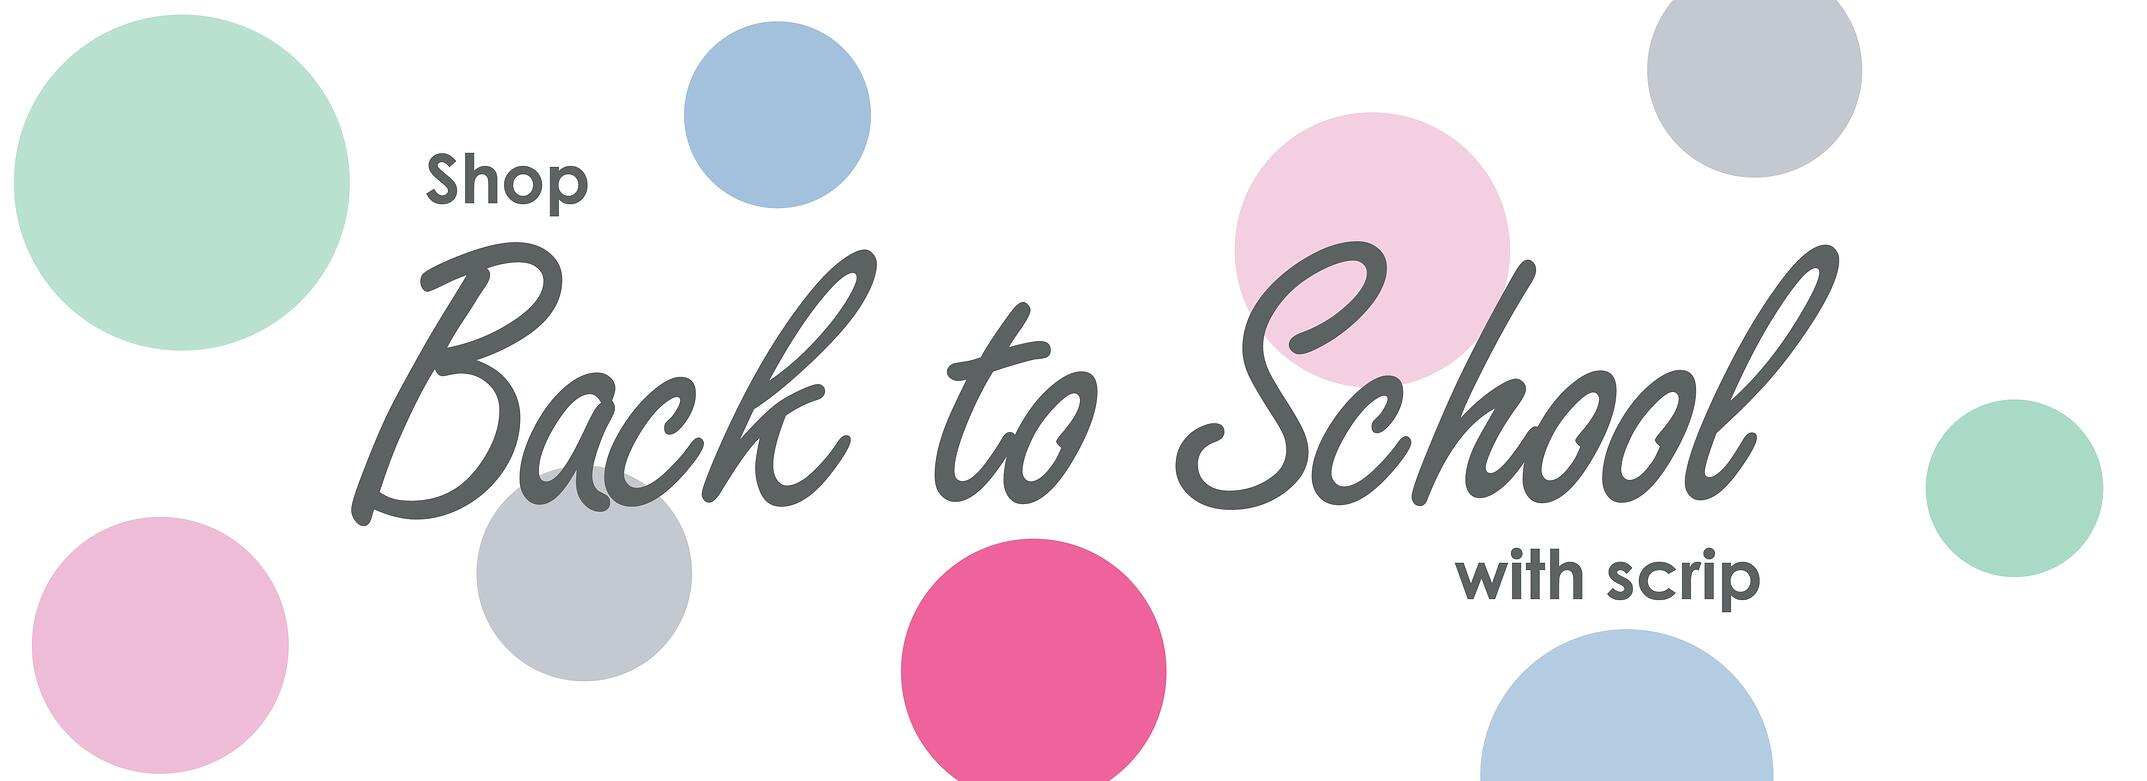 shopping back-to-school with scrip